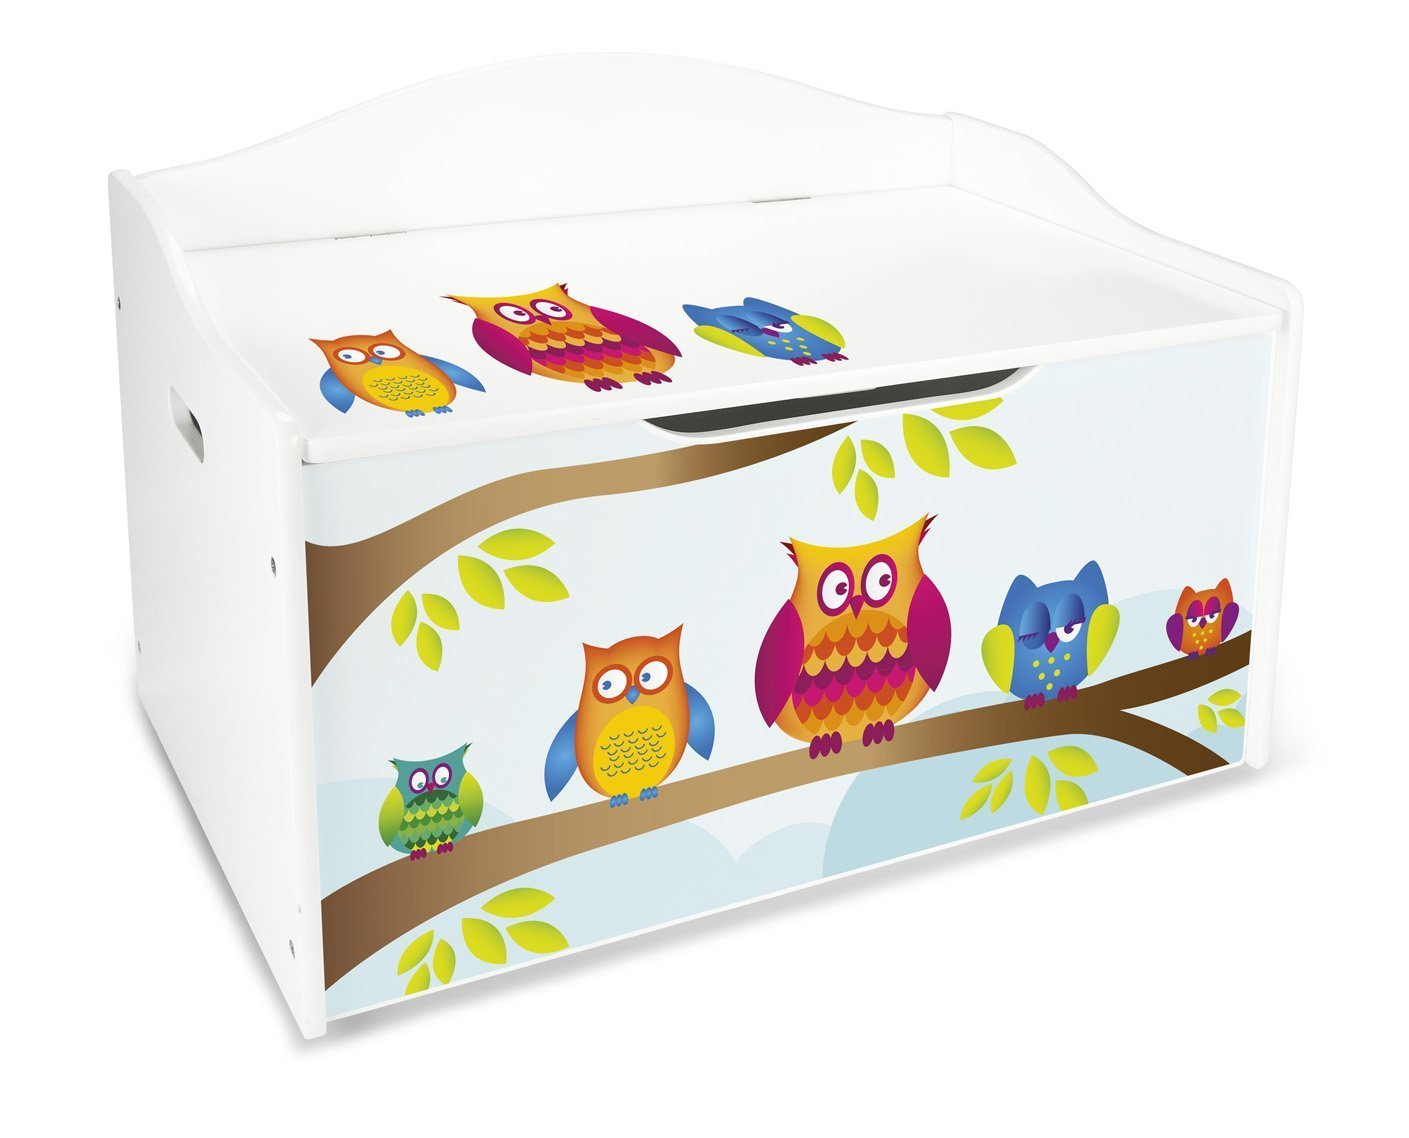 Children's Storage Bench XL Child Chest Bench Motif: Owls Toy Storage Box Seat with Storage Space for Toys Leomark